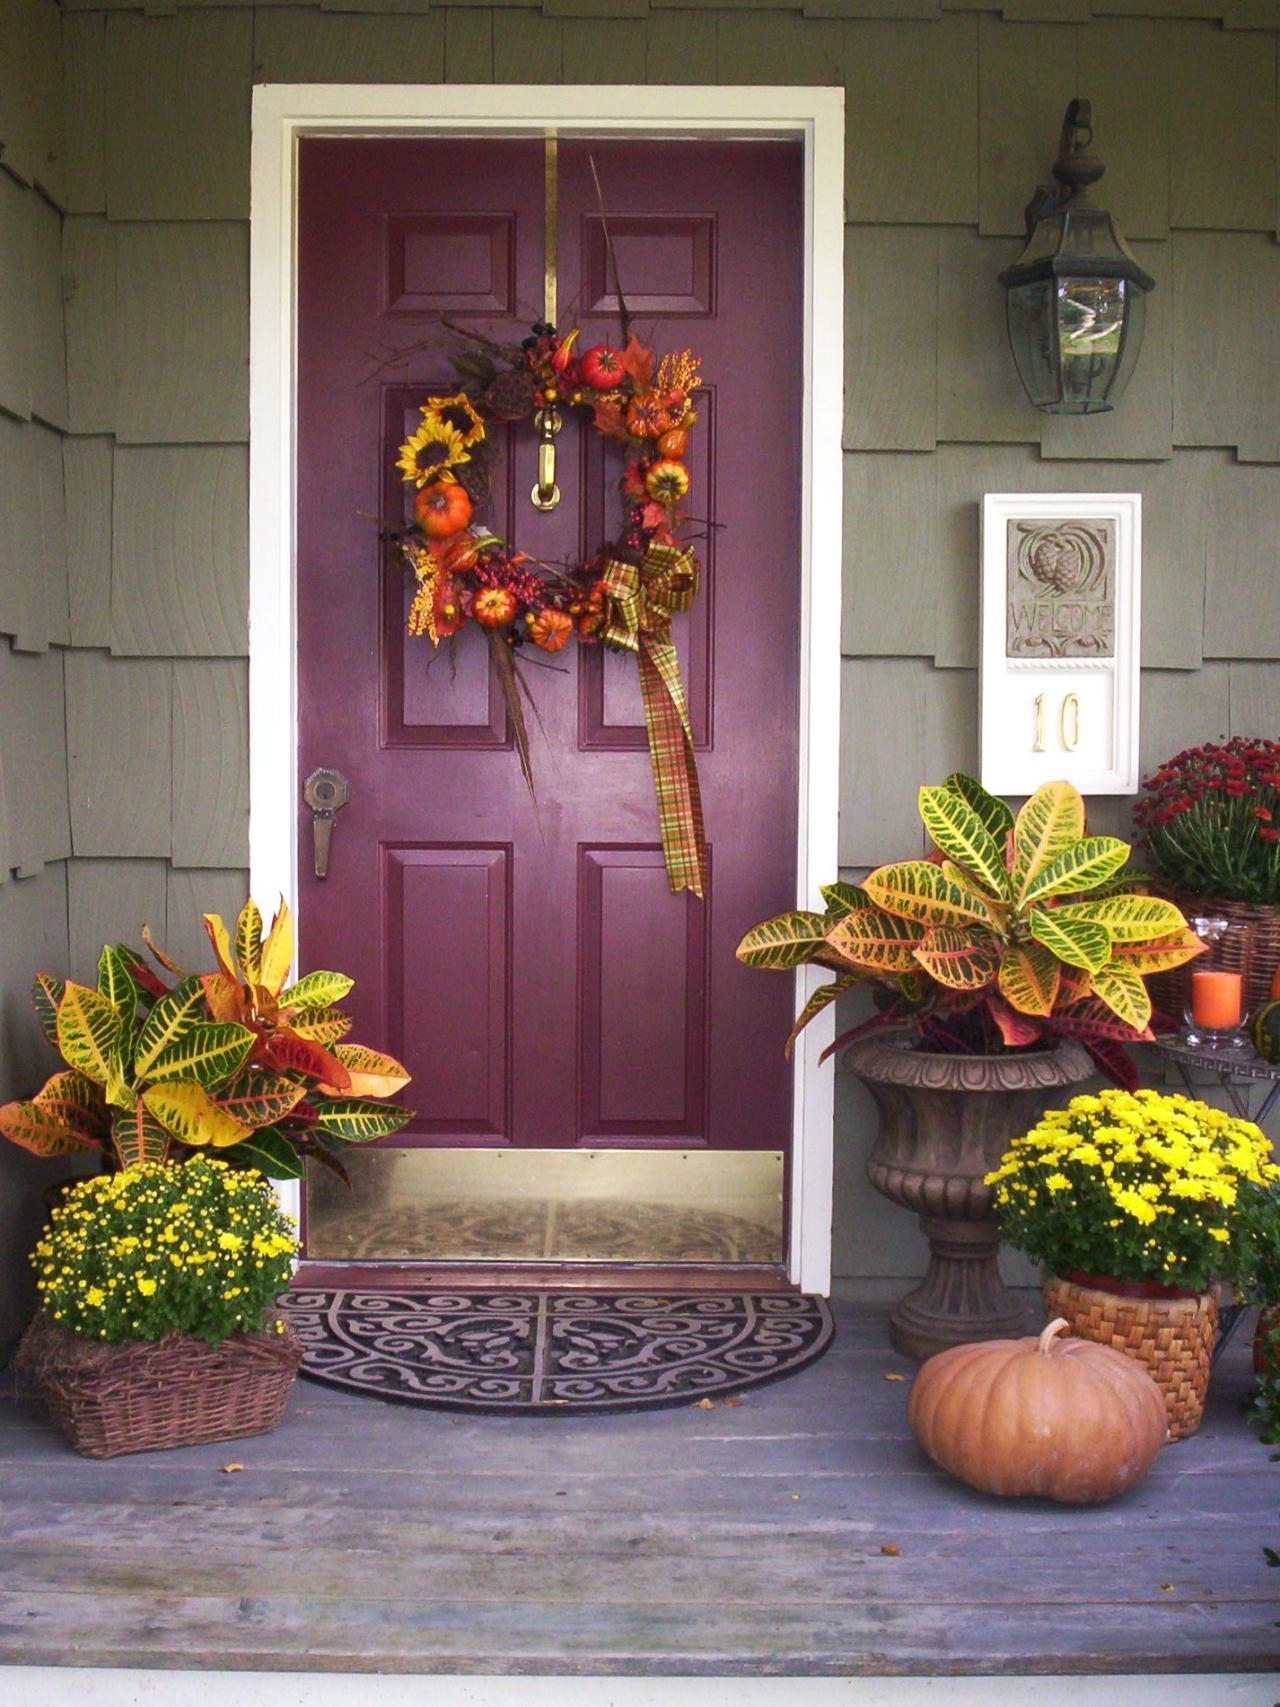 10 Lovely Front Door Fall Decorating Ideas %name